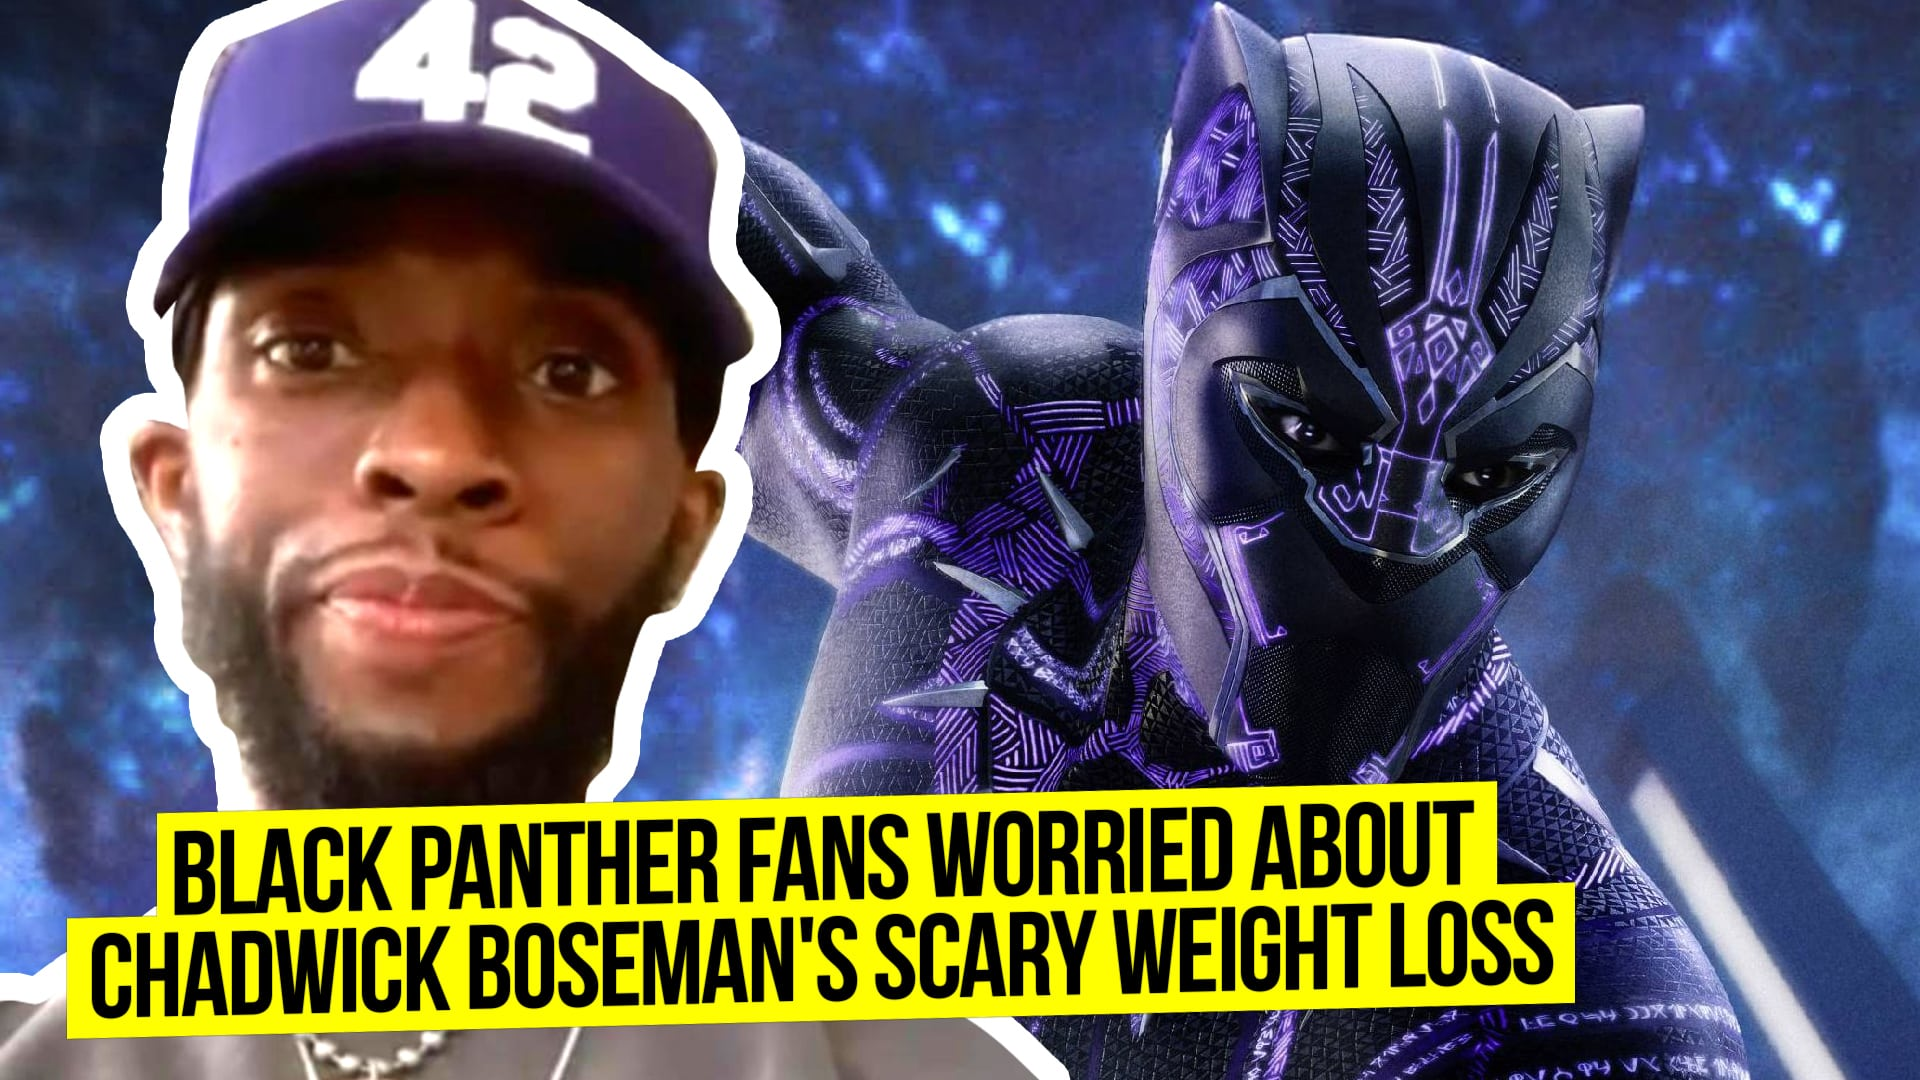 Black Panther Fans Worried About Chadwick Boseman_s Scary Weight Loss